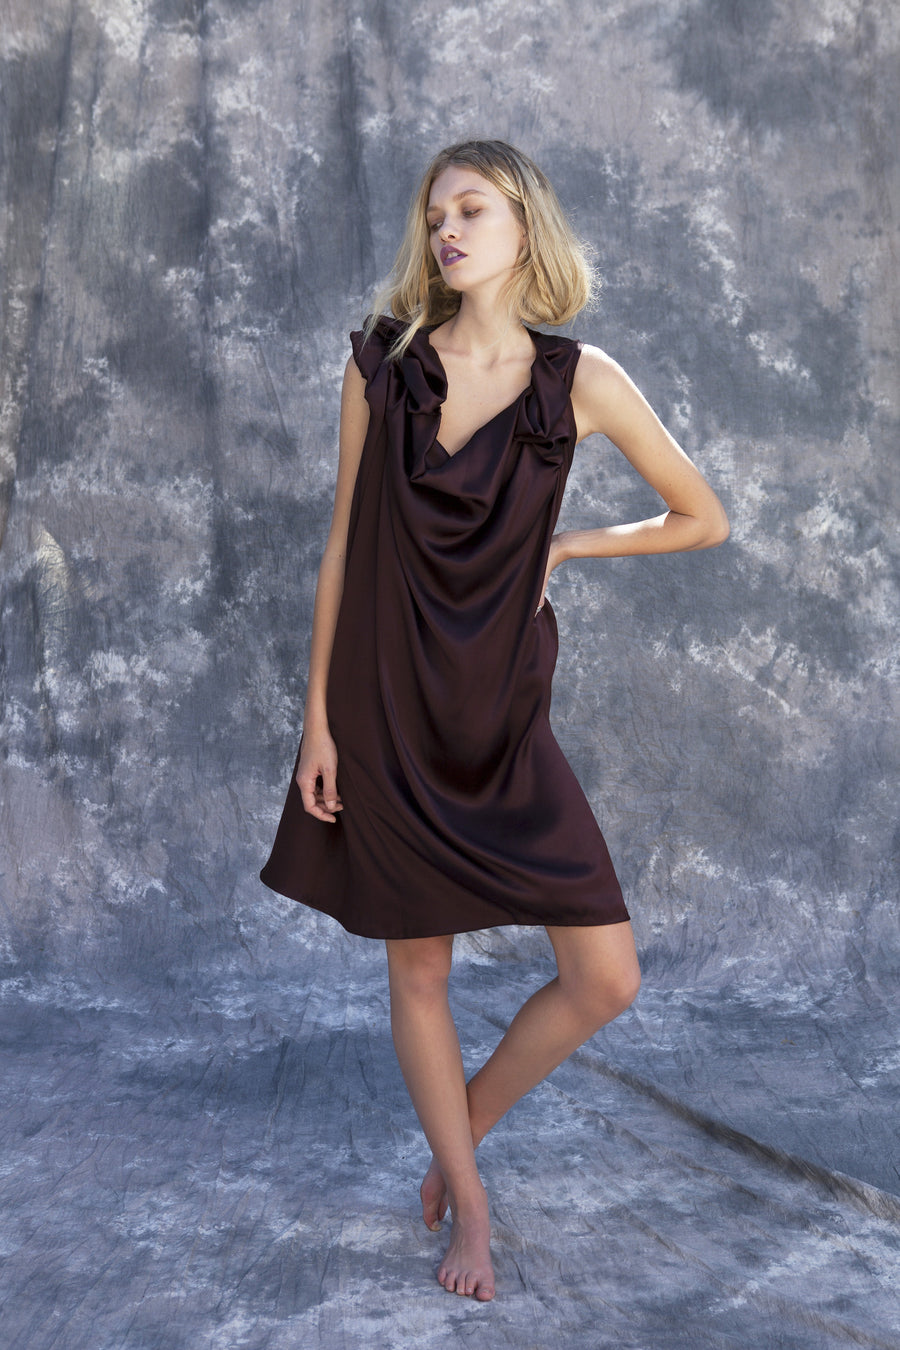 Maggie Laine IMG model Wendy Nichol New York Clothing Designer Handmade in NYC New York City SS17 Fashion Runway Show Signals to the Mothership Made to Order Custom Tailoring Made to Measure Death Valley Simple Silk Draped Shoulder Shift Dress Burgundy Ox Blood Maroon Short